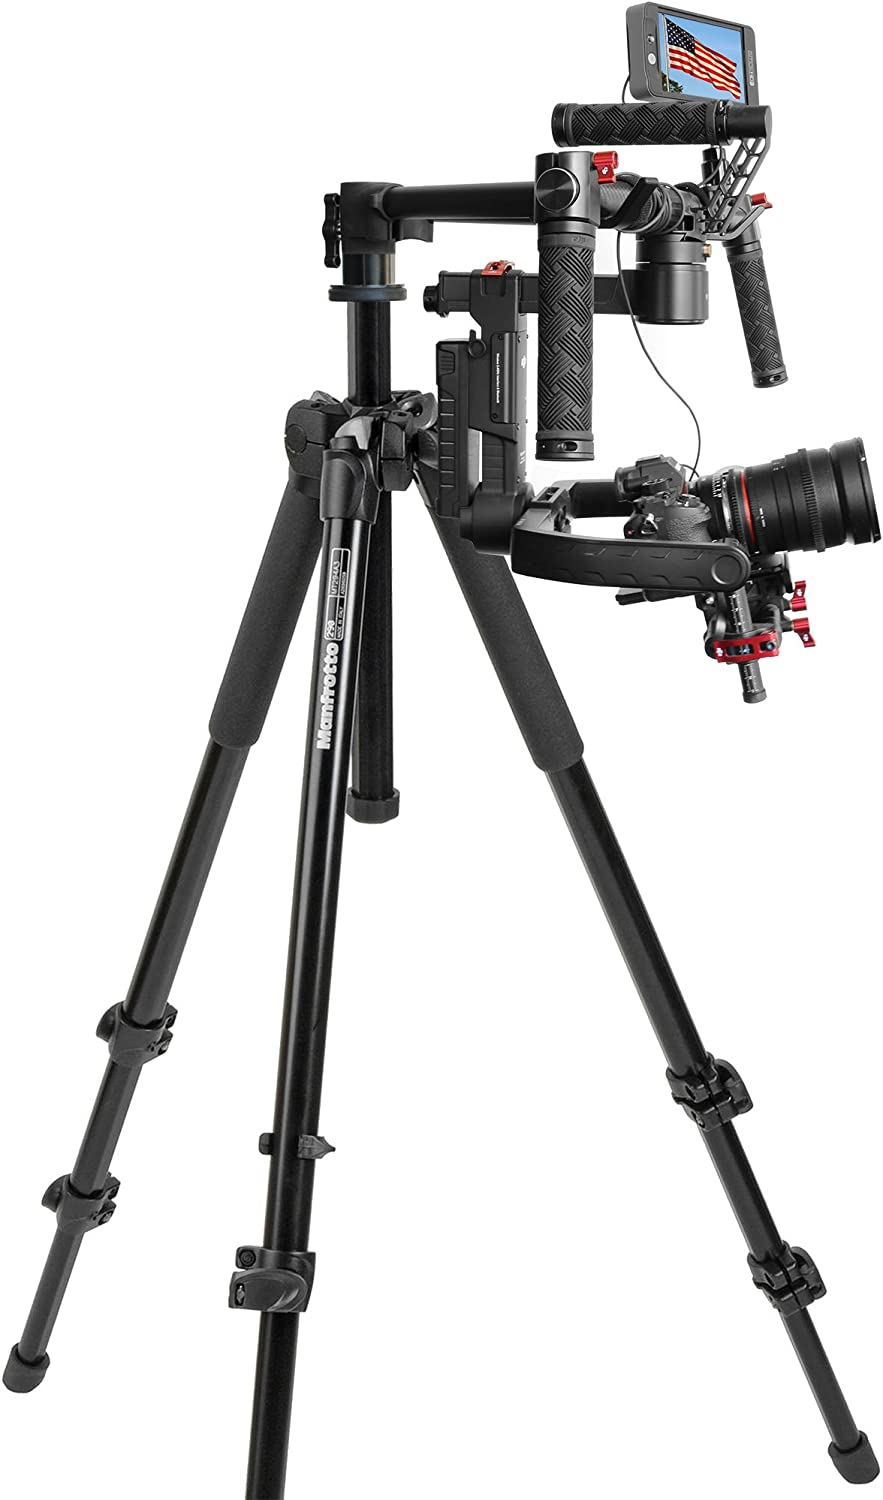 on Tripod to Make stabilizers Adjustment Procedure Quick and Easy Part 11, Part 15 GyroVu Tuning Stand Tripod Adaptor for DJI Ronin//DJI Ronin M//MX Designed to Mount DJI Tuning Stand